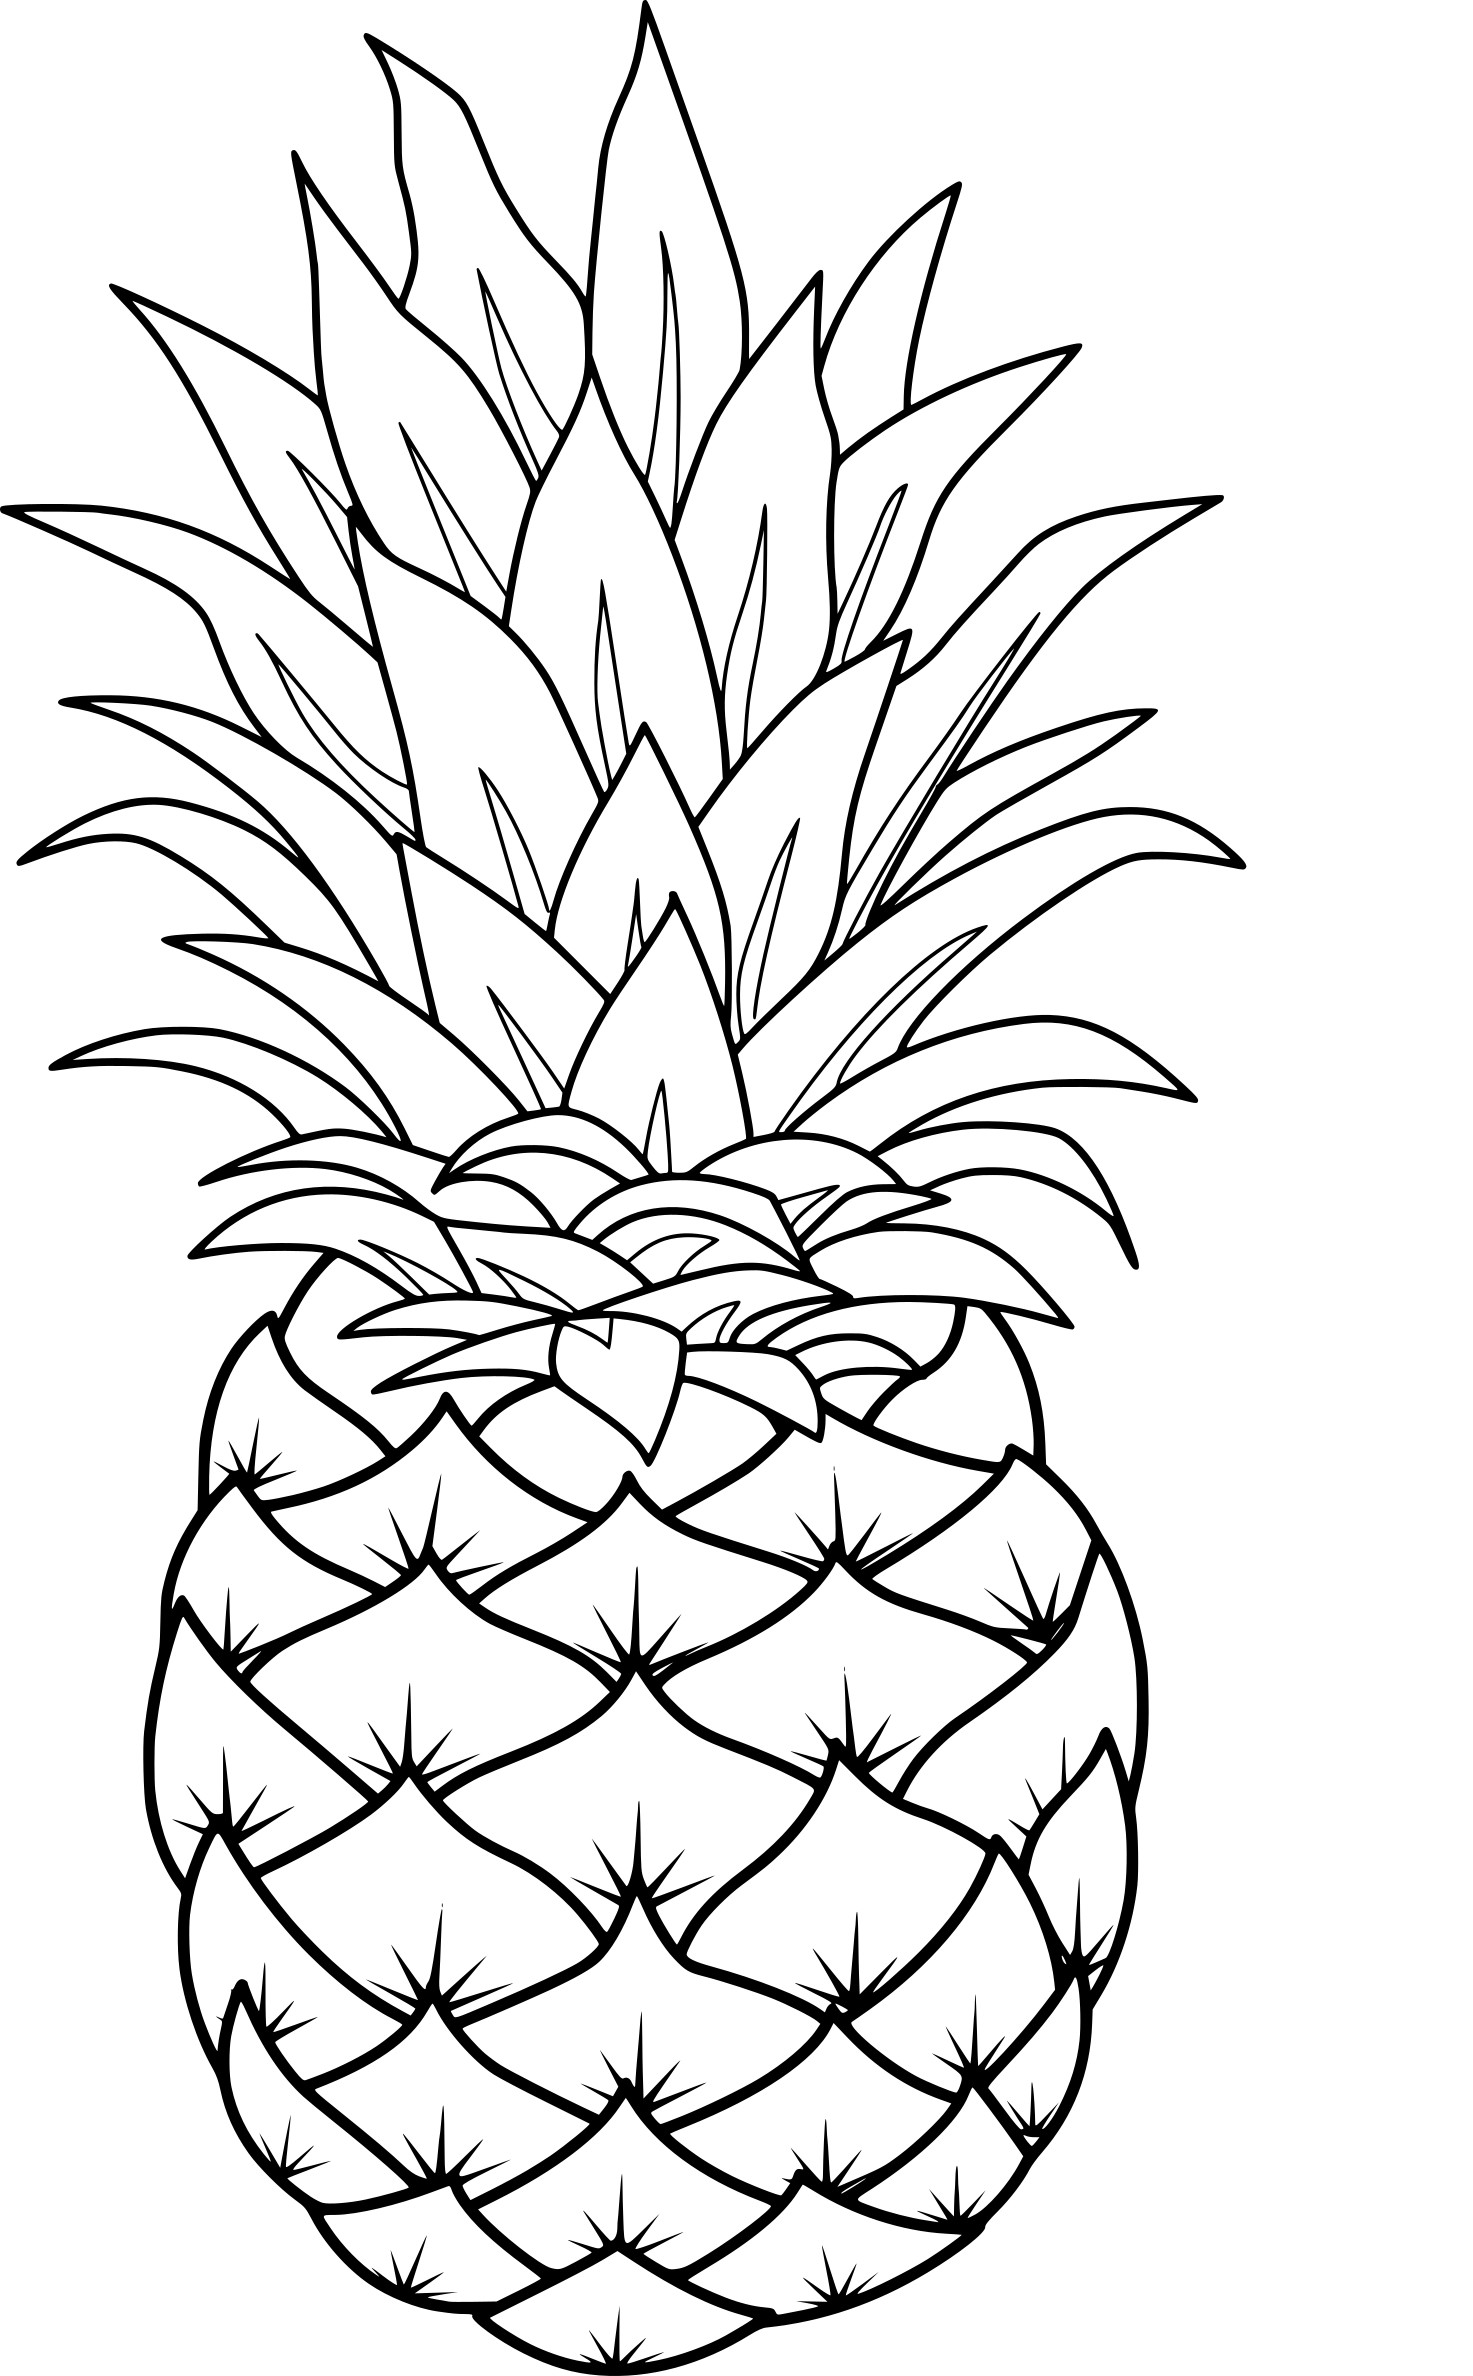 pineapple coloring image printable pineapple coloring pages for kids cool2bkids pineapple image coloring